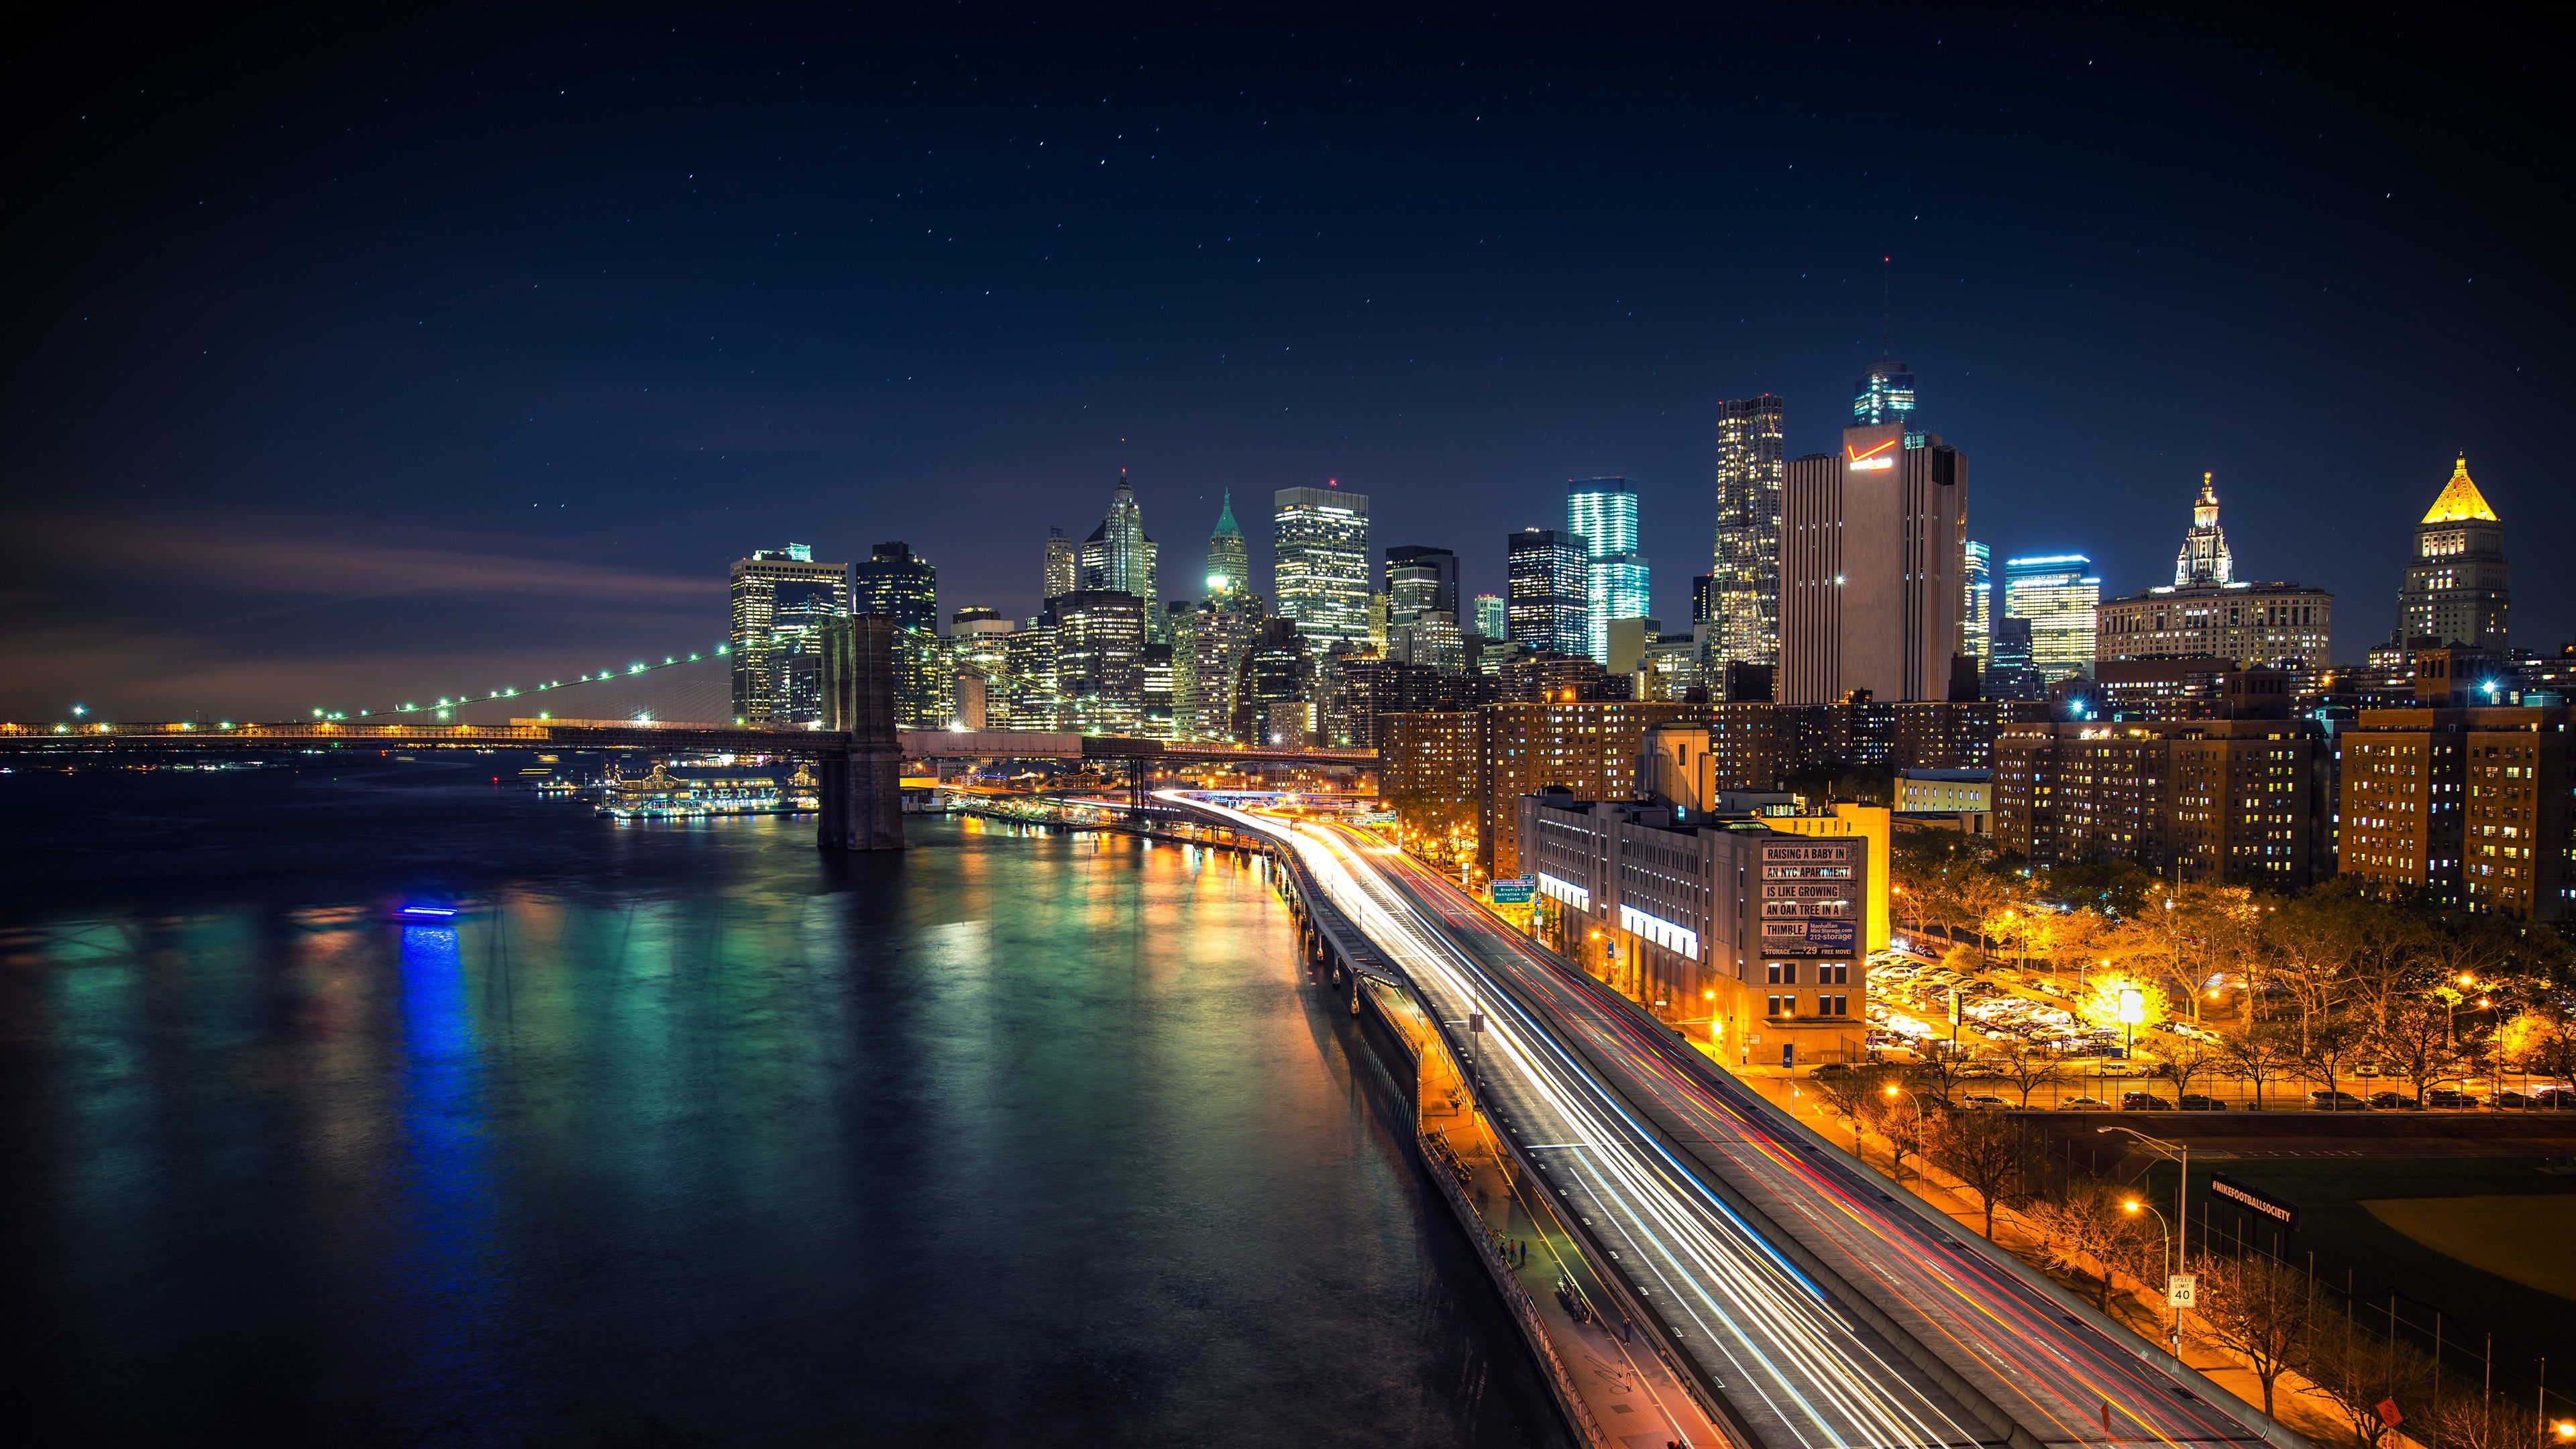 City Building Structure City During Night Cityscape New York City Wallpaper City Wallpaper Mkbhd Wallpapers Background Hd Wallpaper